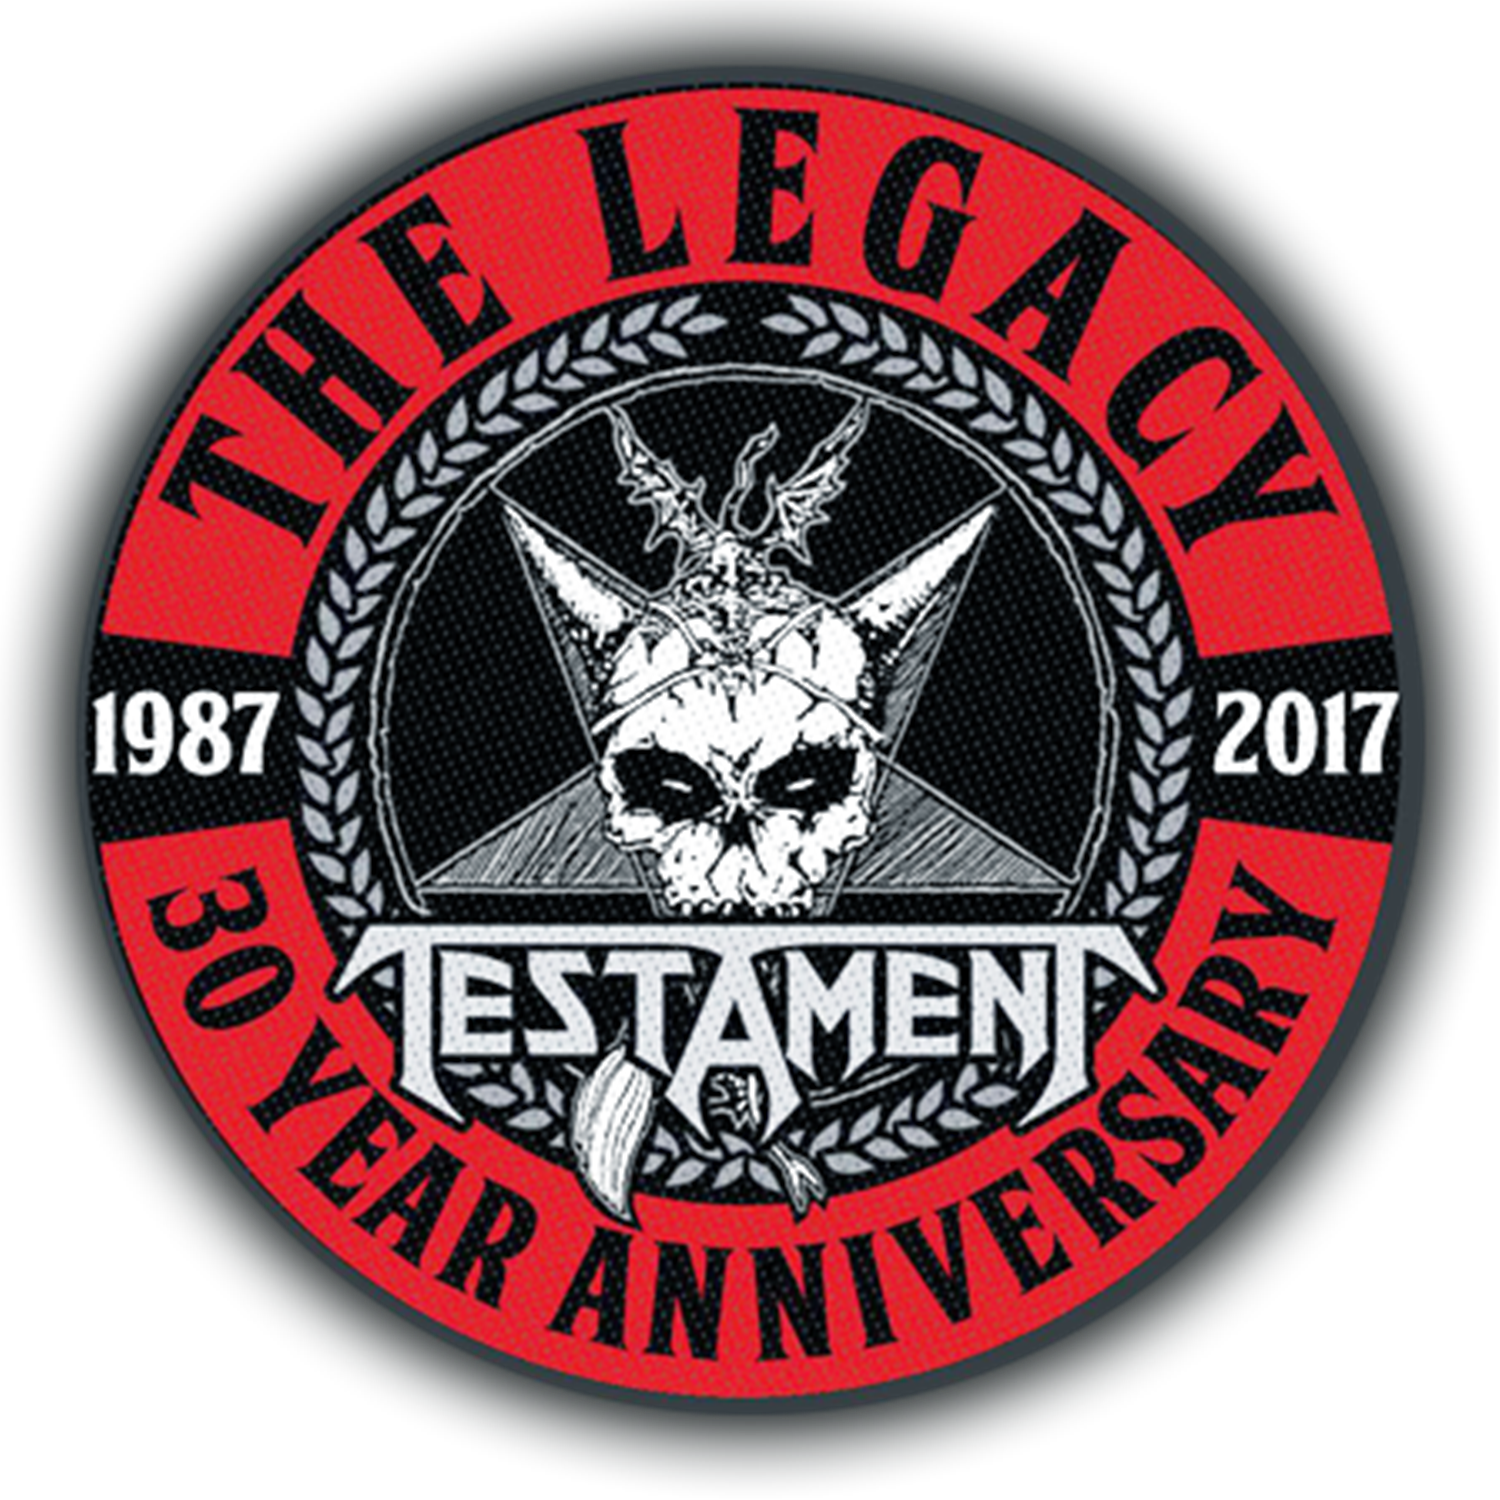 The Legacy 30 Years Patch